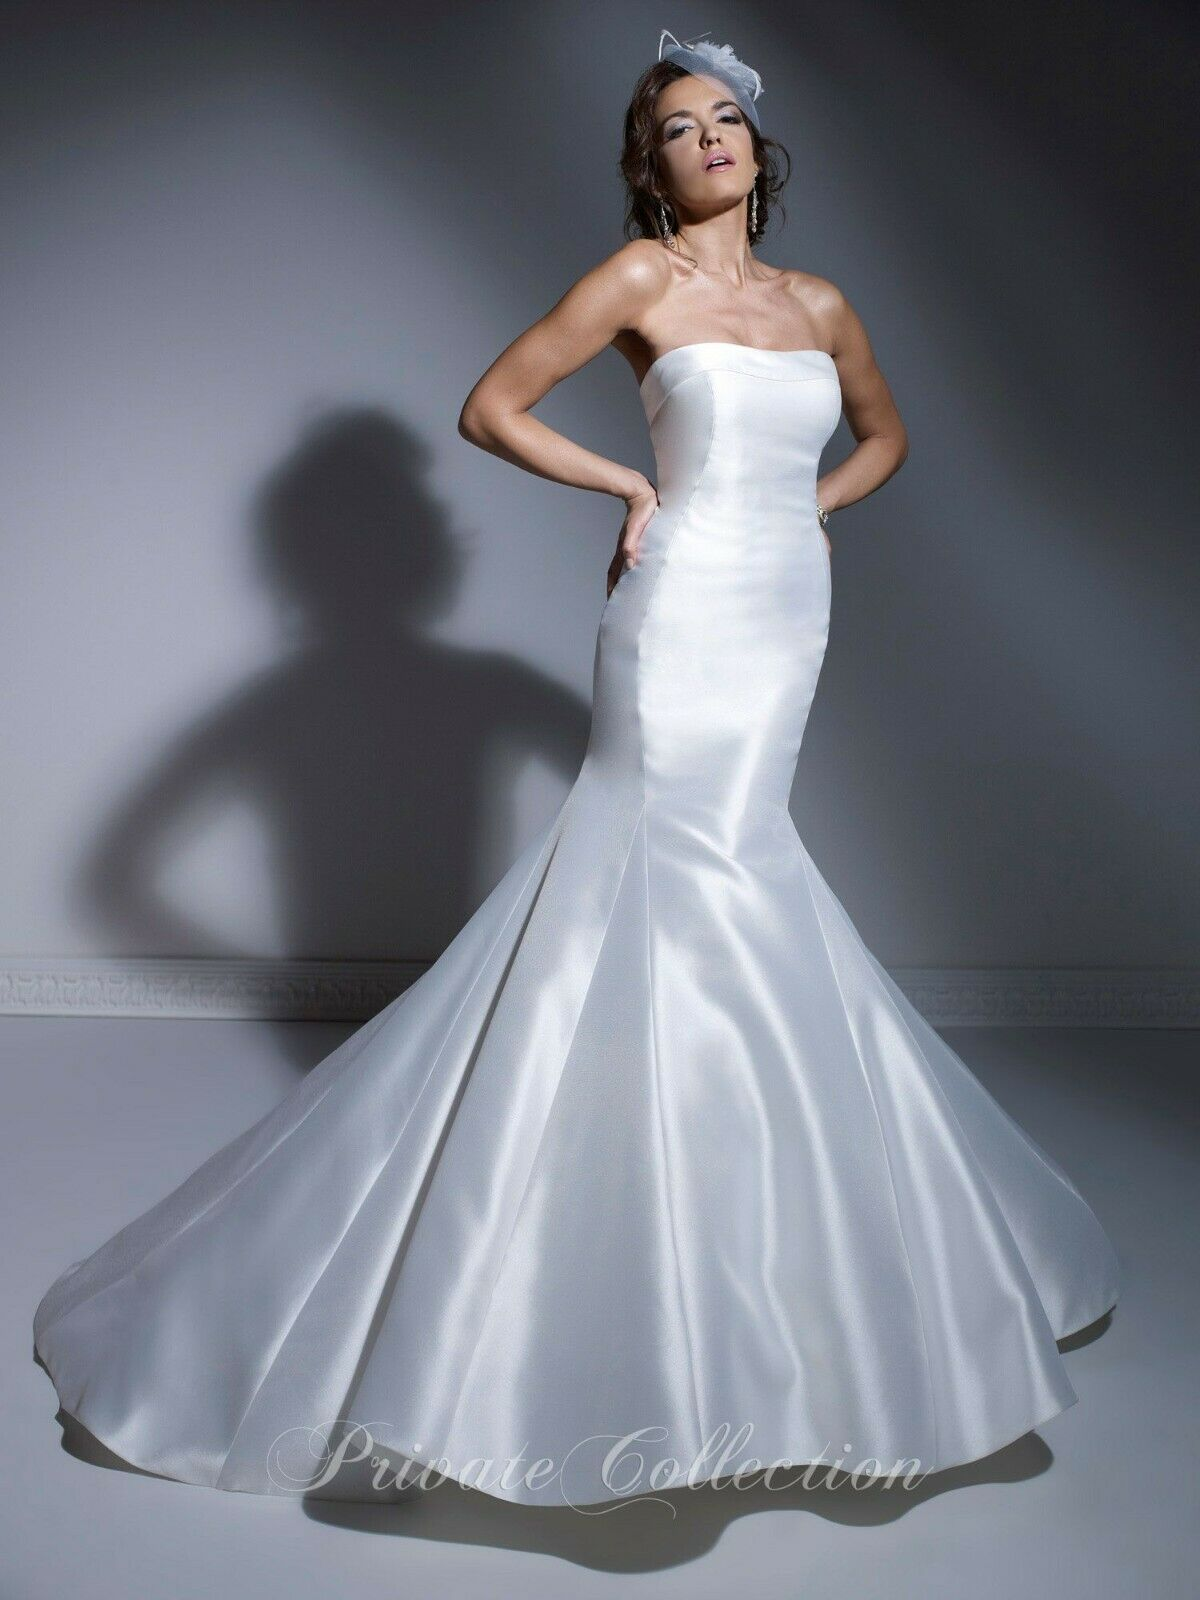 Private Collection Bridal Wedding Dress 18841 White Satin Size 16 NWT Wu